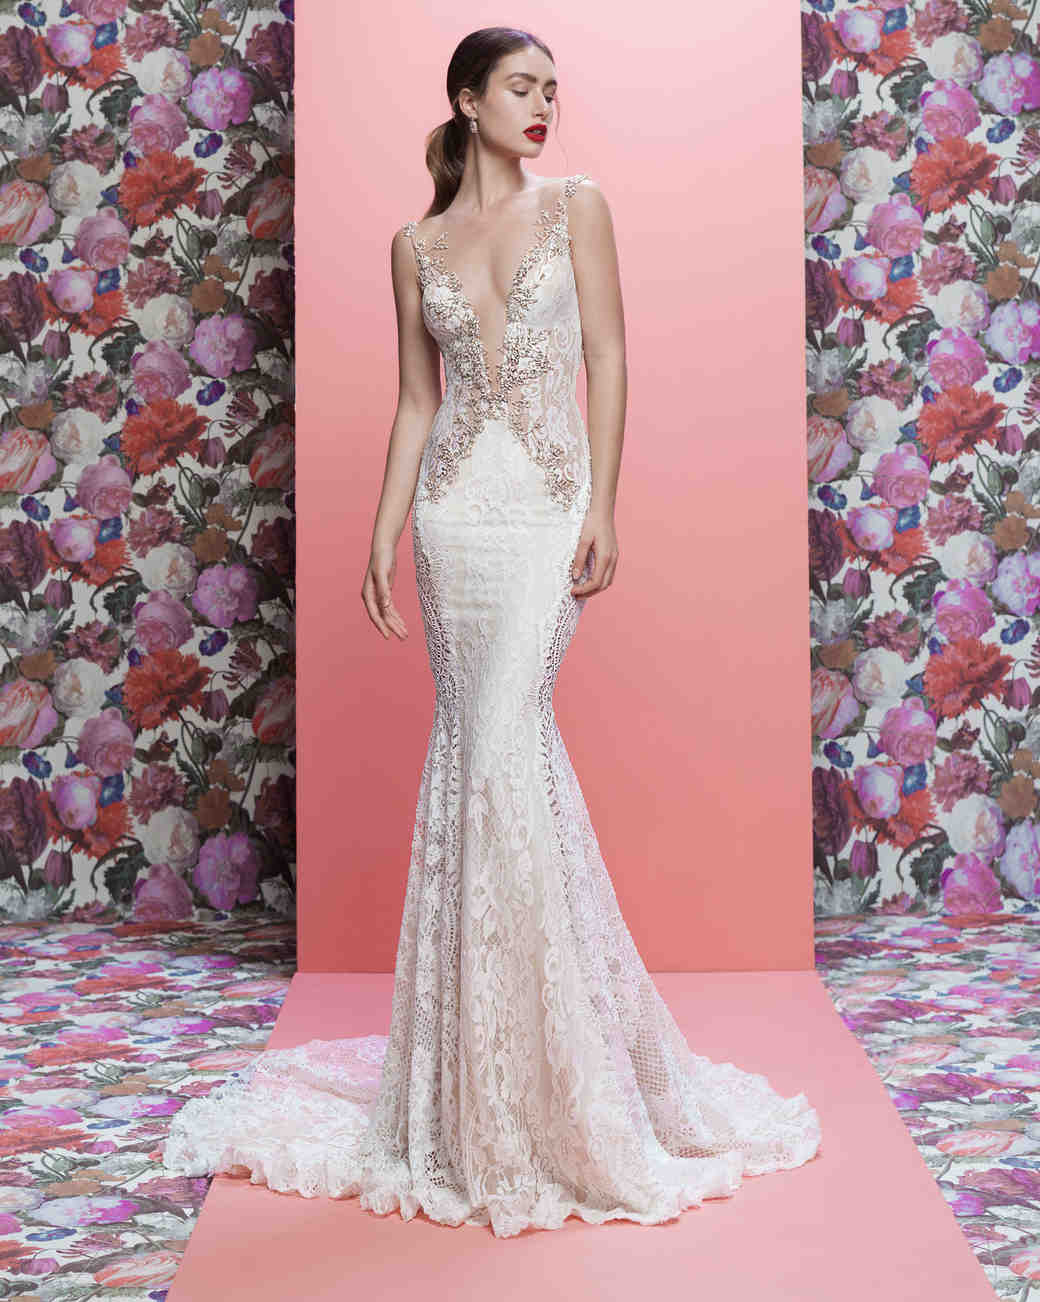 Galia Lahav Couture Spring 2019 Wedding Dress Collection | Martha ...